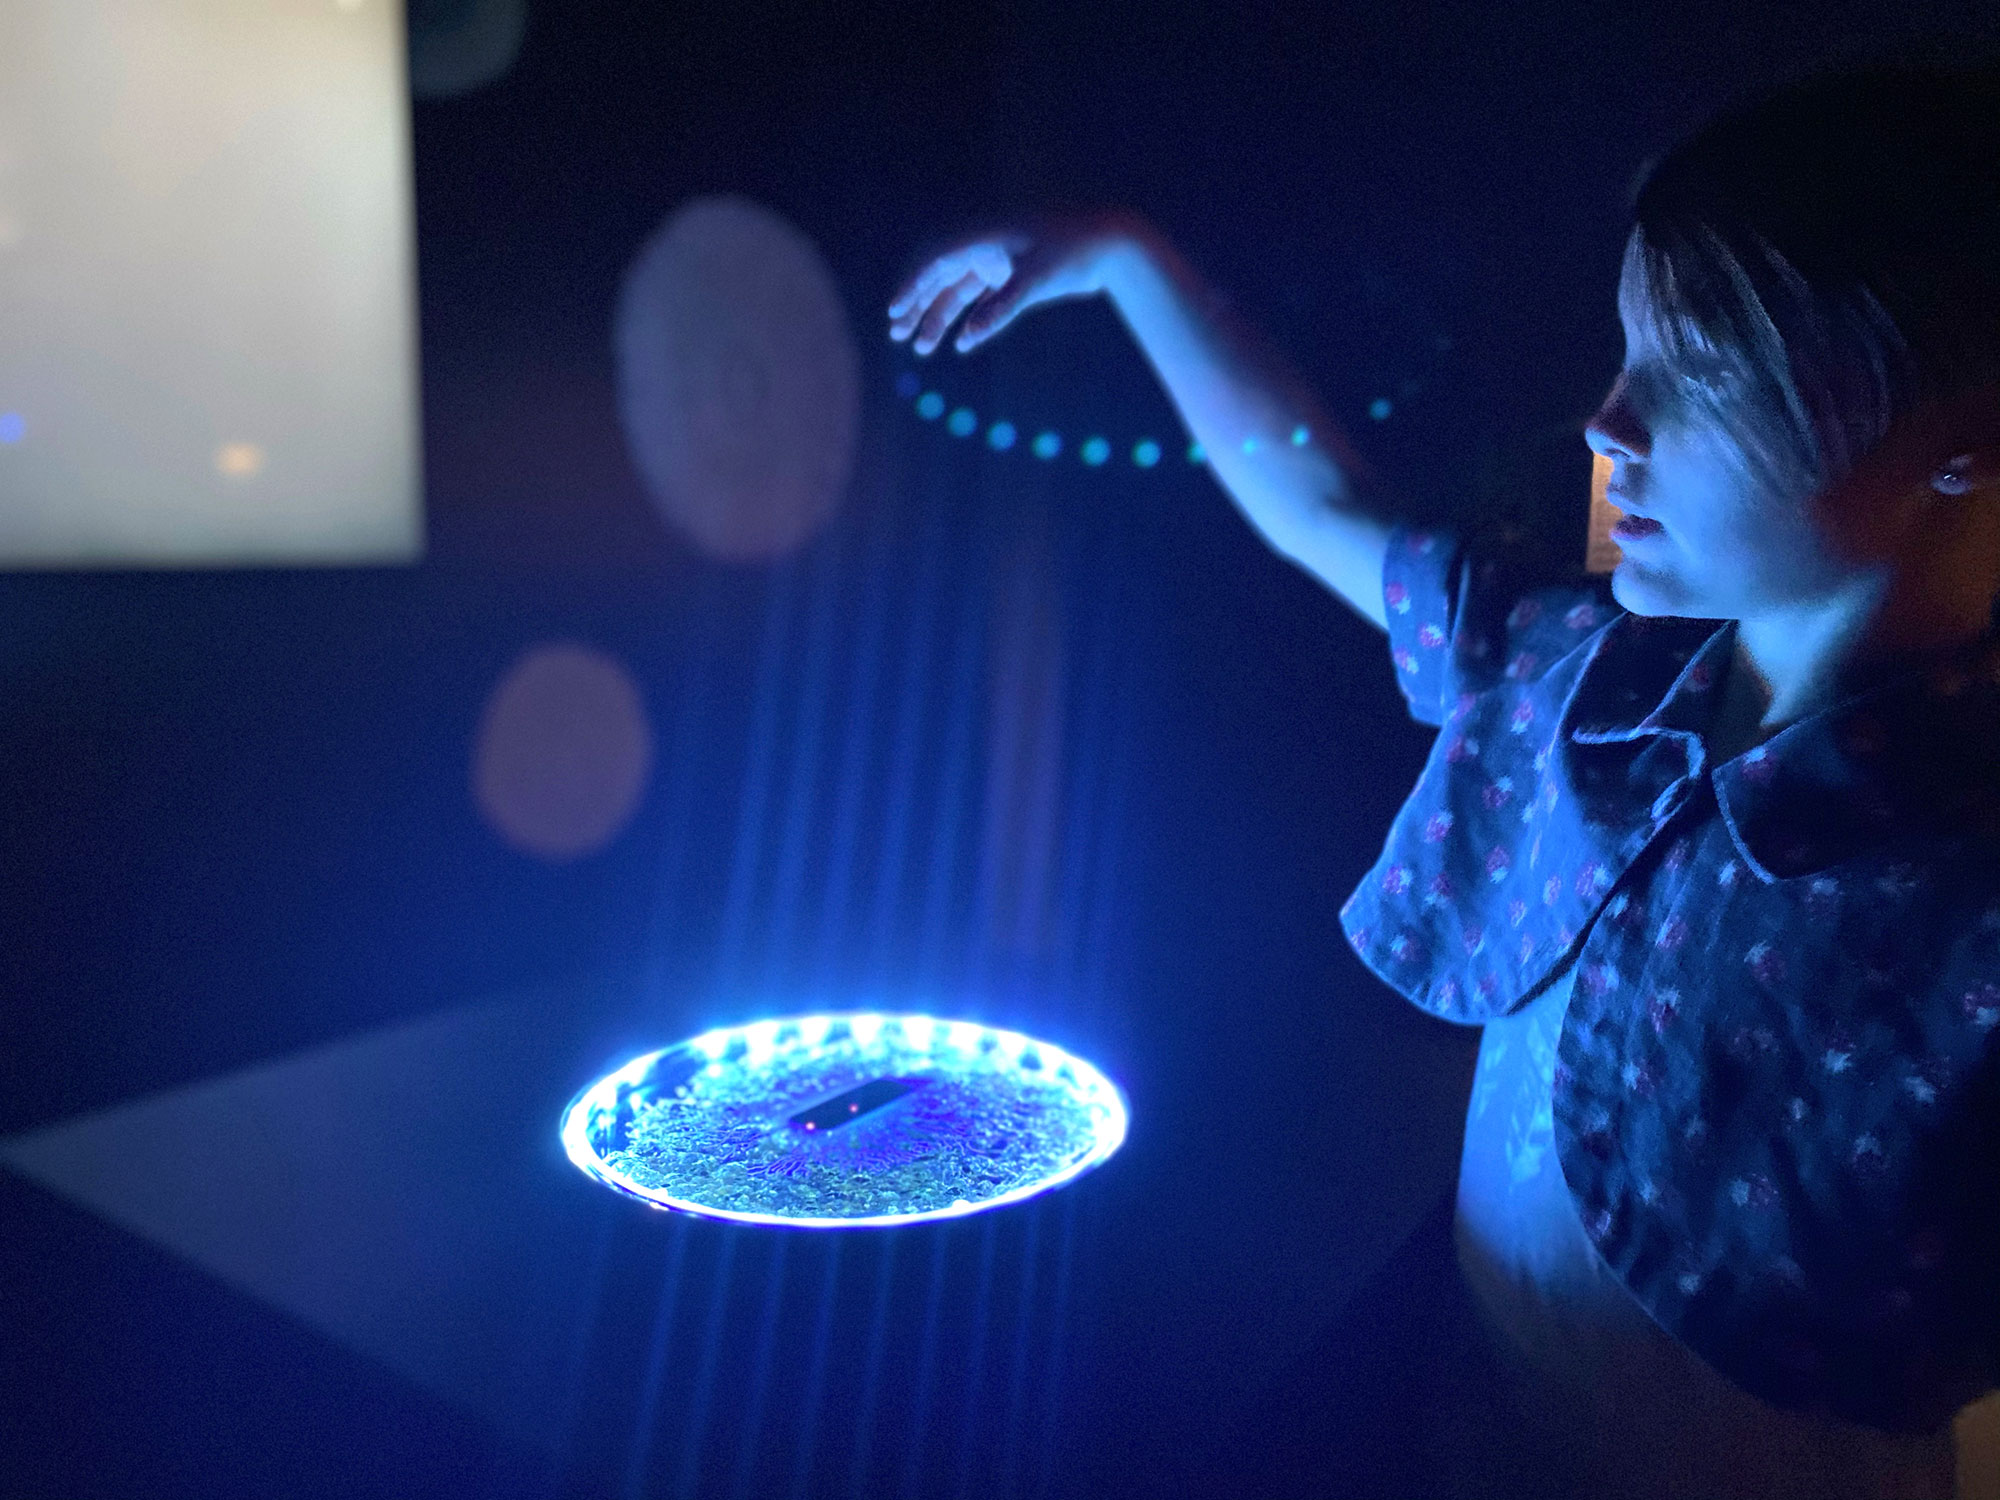 Sound for Fungi, installation at Experimenta Life Forms